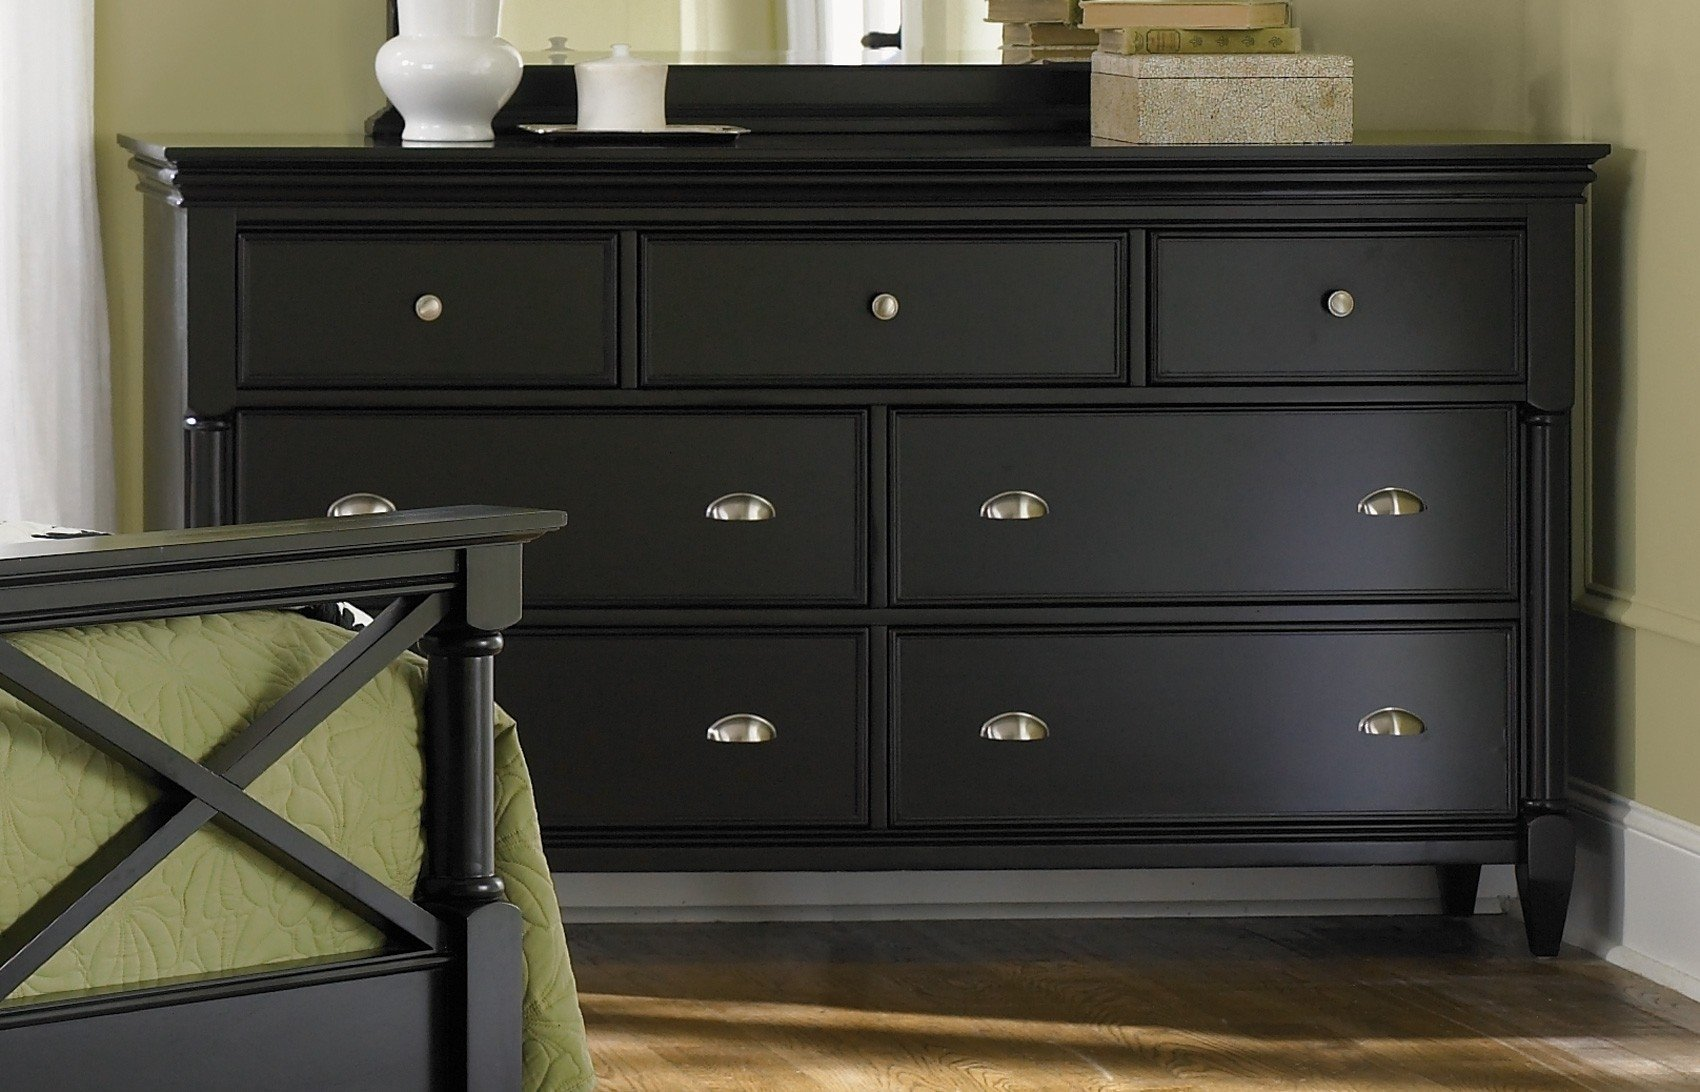 10 Famous Ideas For Painting A Dresser craftionary 4 2020